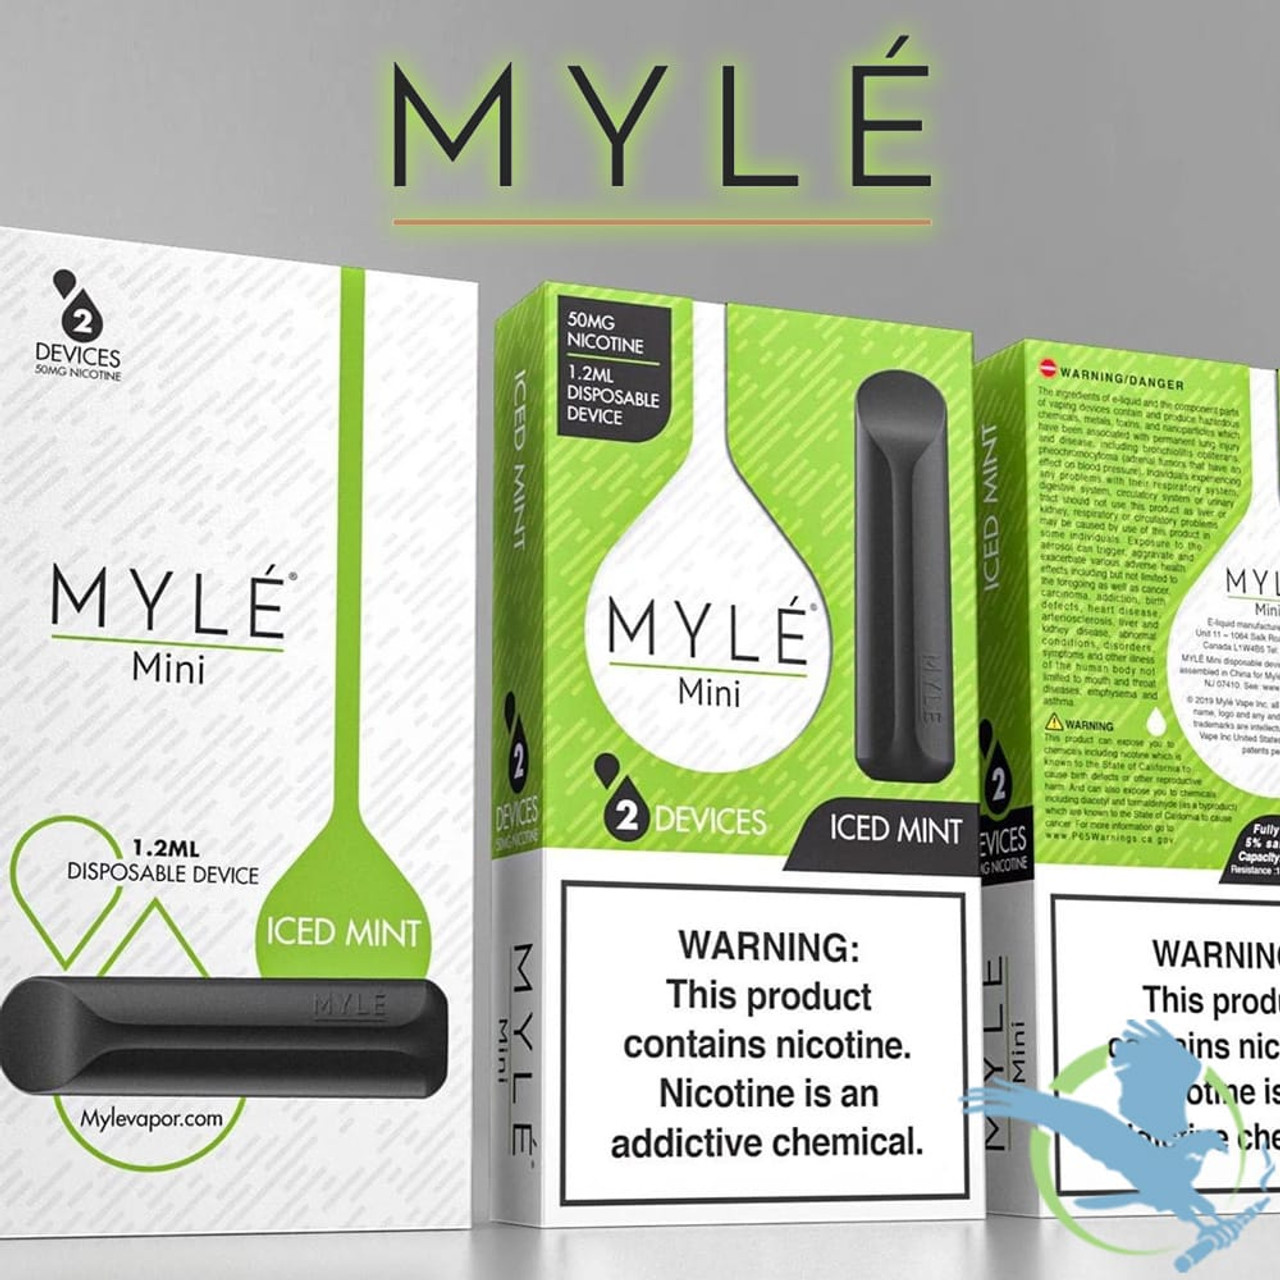 Myle Mini 1 2ML AIO Disposable Pod Devices - Pack of 2 (MSRP $14 99)